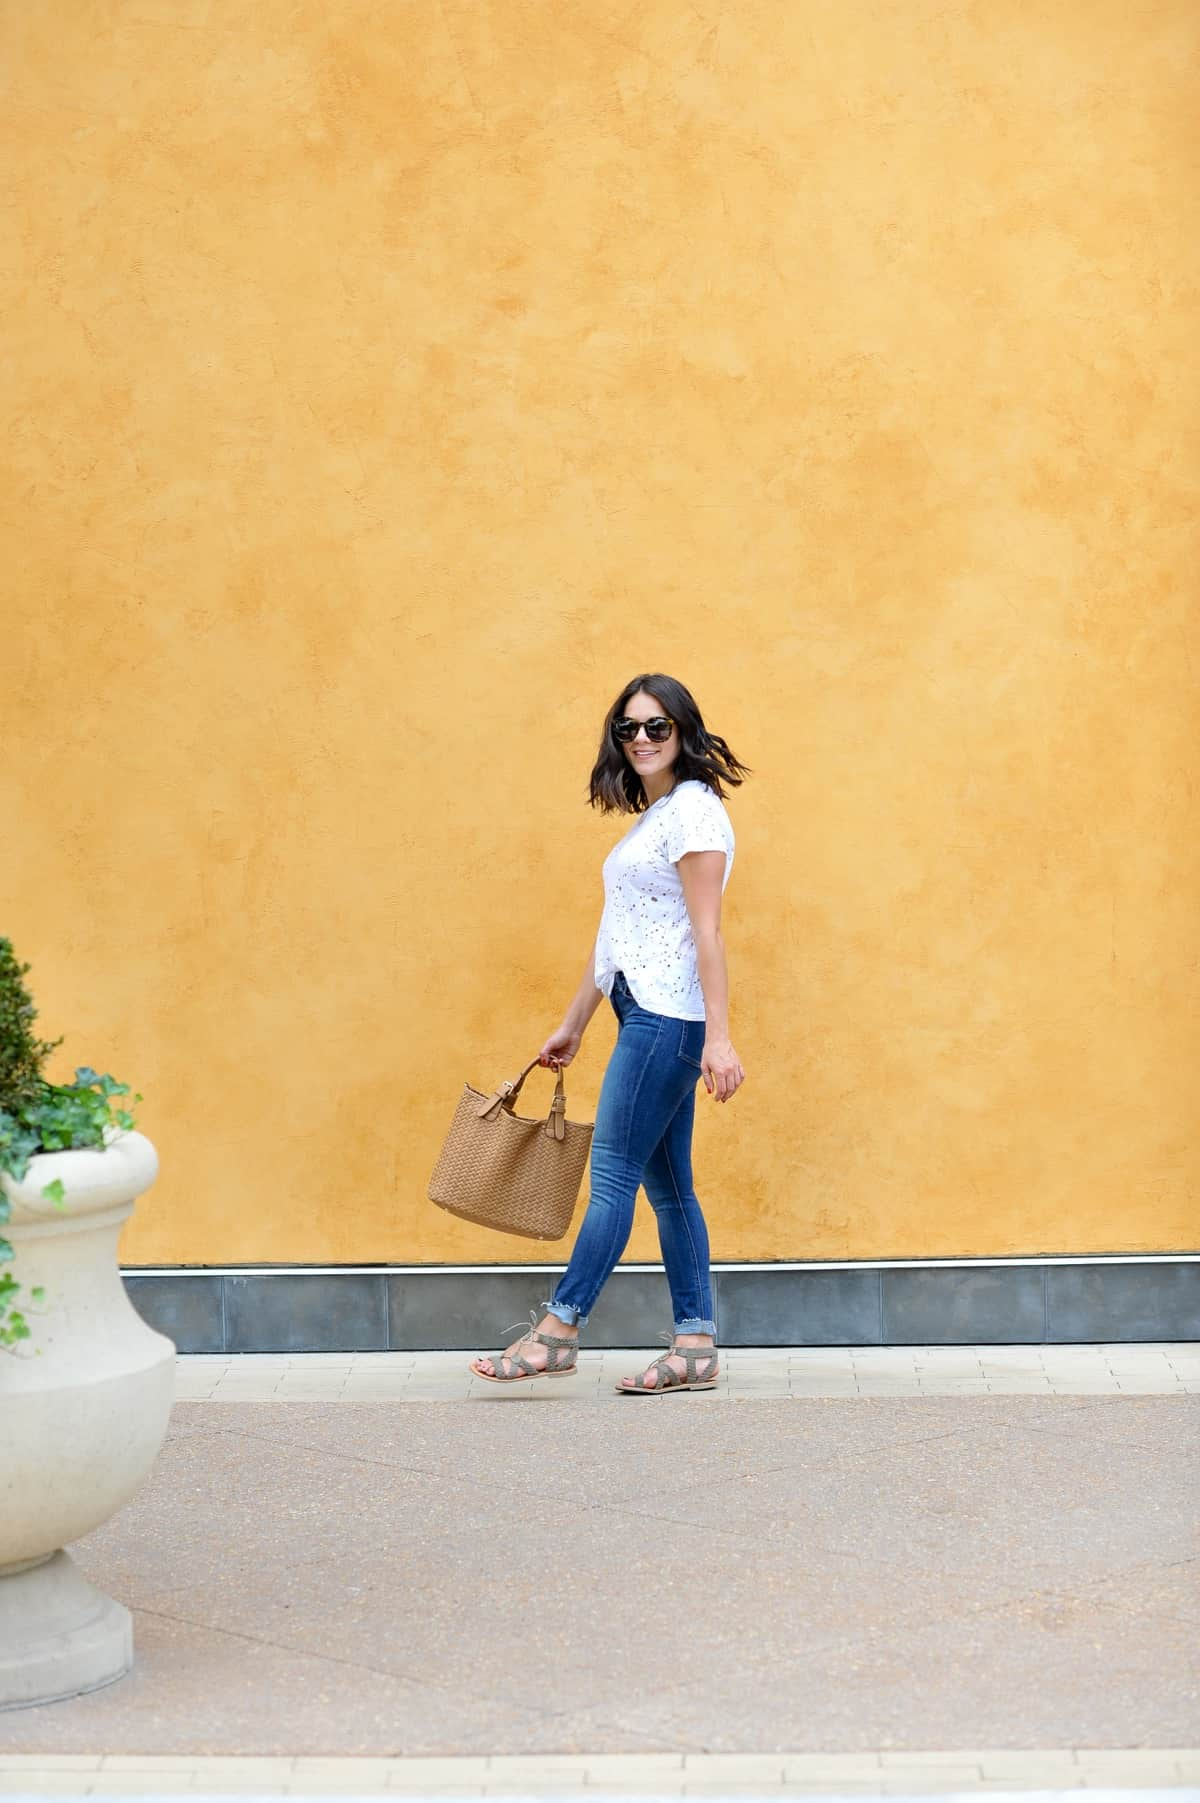 Casual summer outfit ideas - Gladiator sandals for summer - My Style Vita @mystylevita - 22